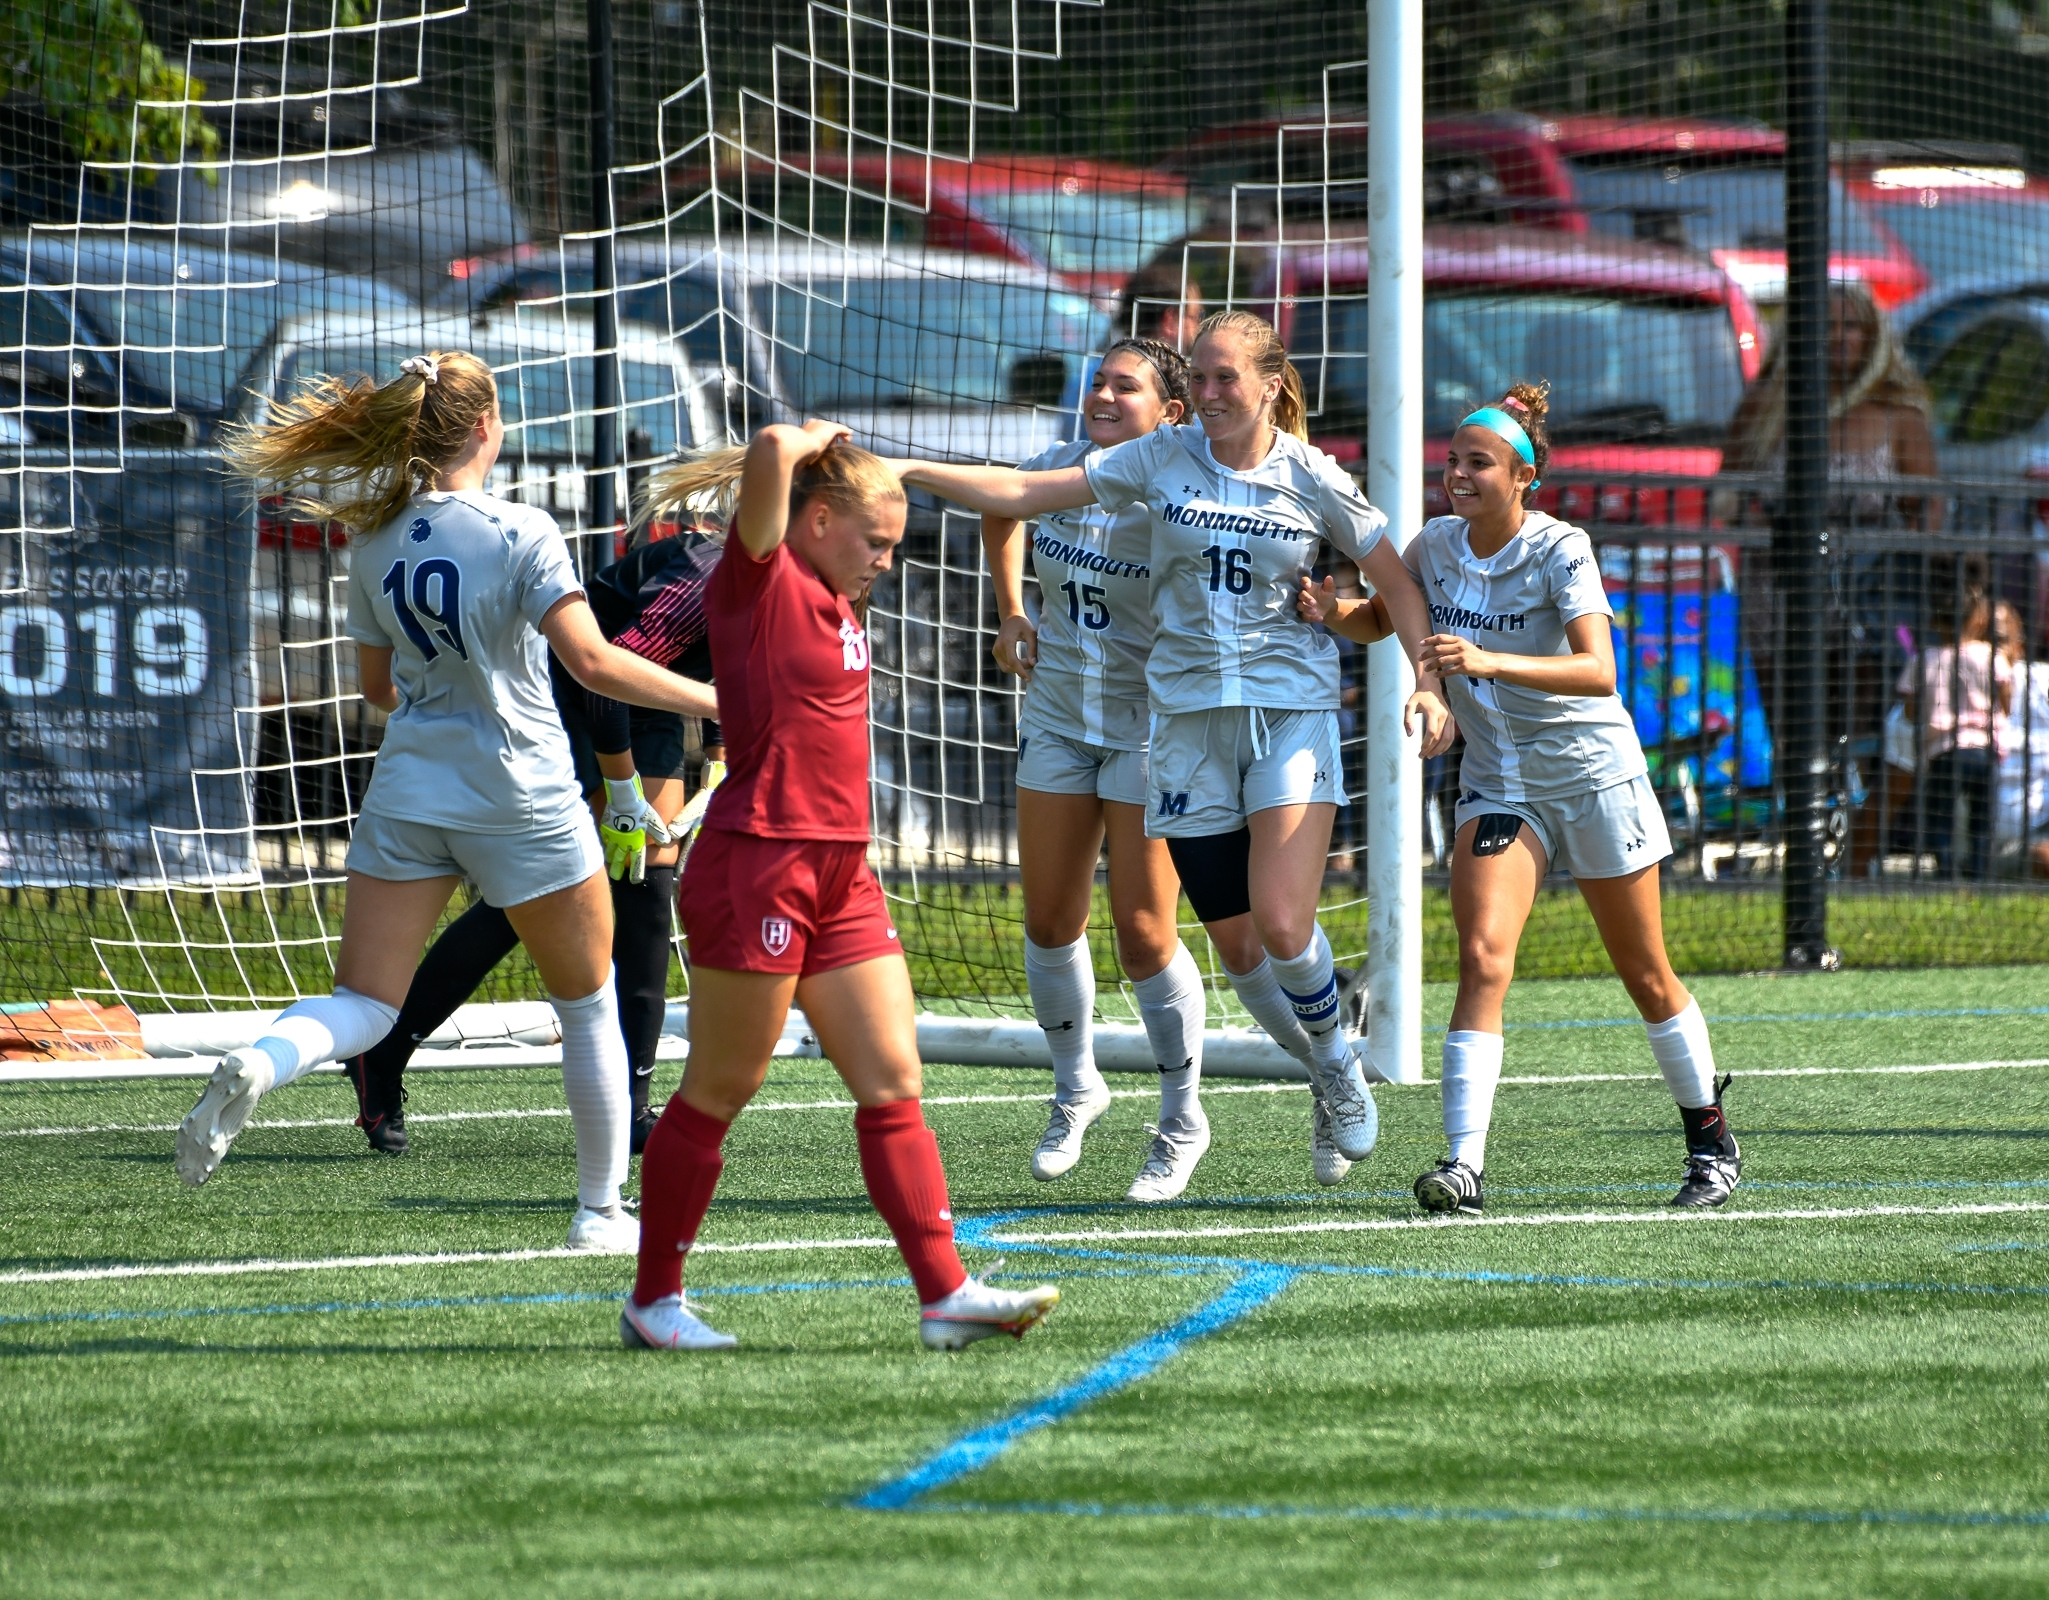 Monmouth, Monmouth Women's Soccer